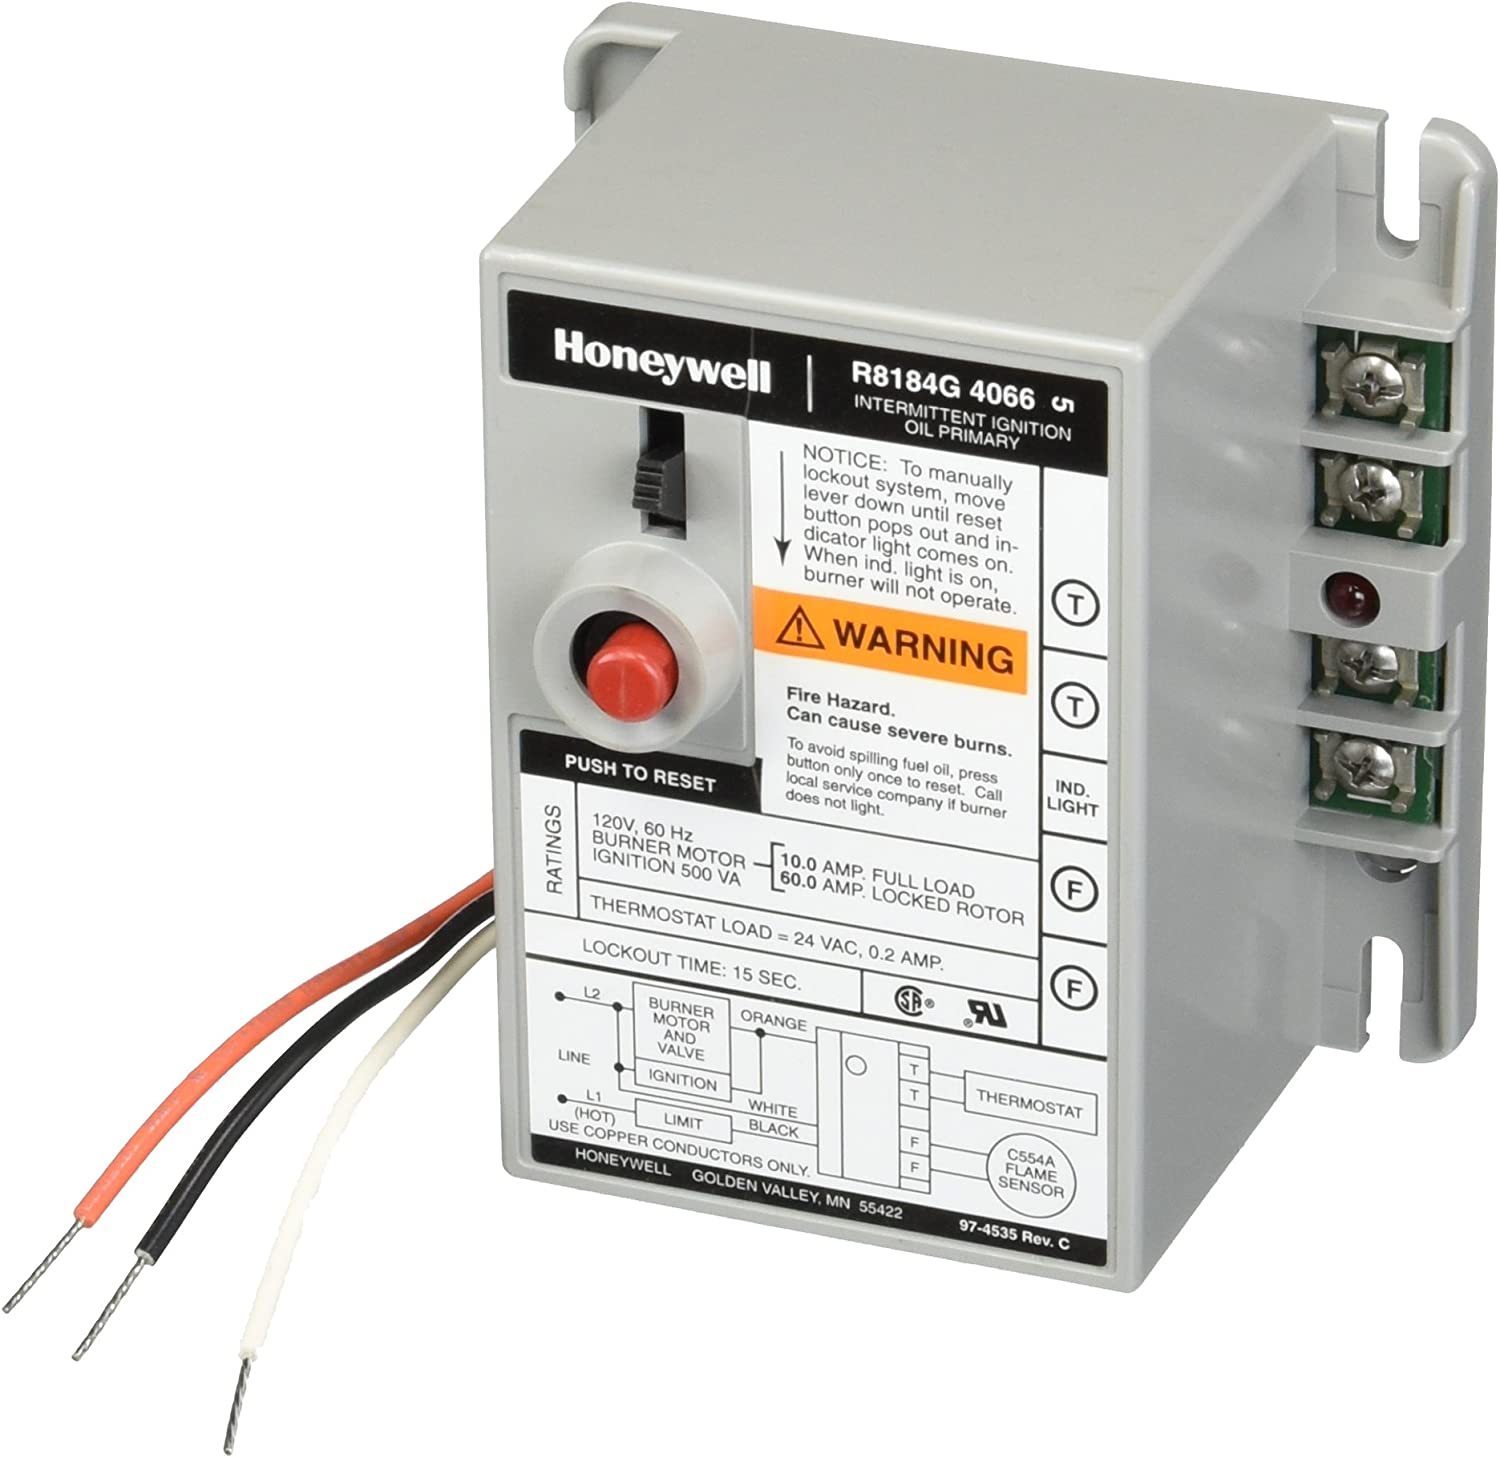 Alarm Outputs and Manual Safety Switch Honeywell R8184G-4066 Protectorelay Oil Burner Control with 15 s Safety Timing